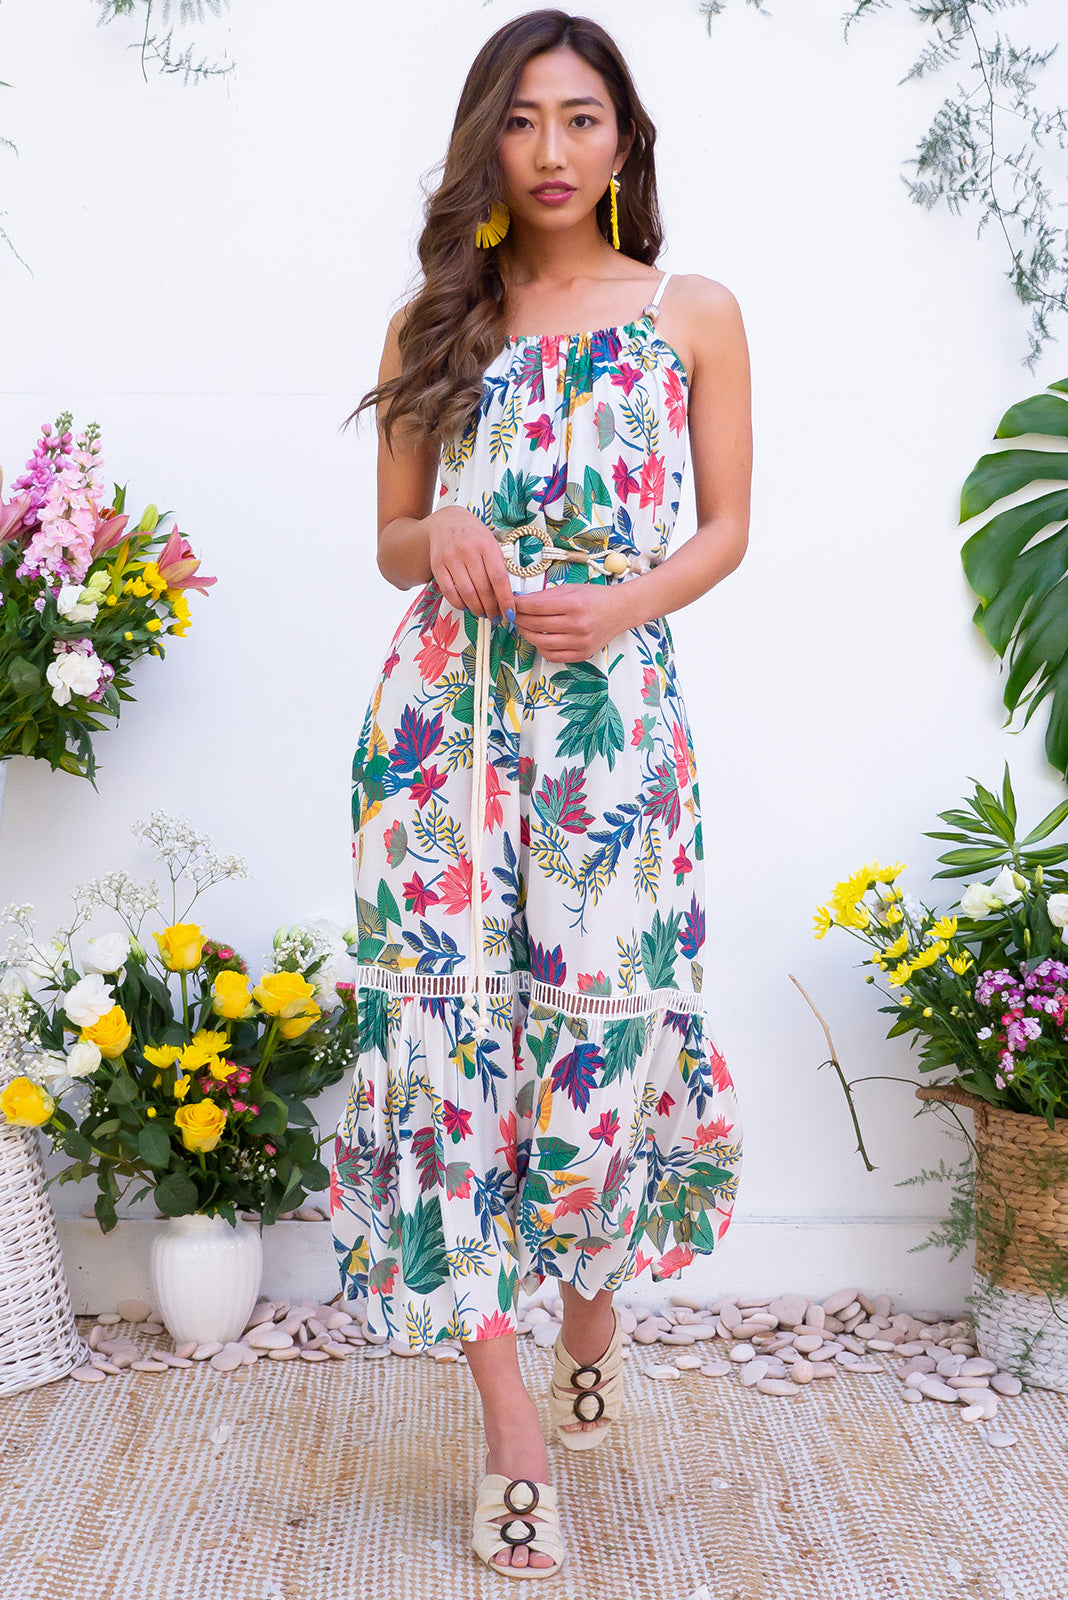 Soleil Fantails Maxi Dress - A crisp white and tropical print strapless summer dress. Featuring bright colours on a white base rayon fabric. Adjustable neck tie with beads.